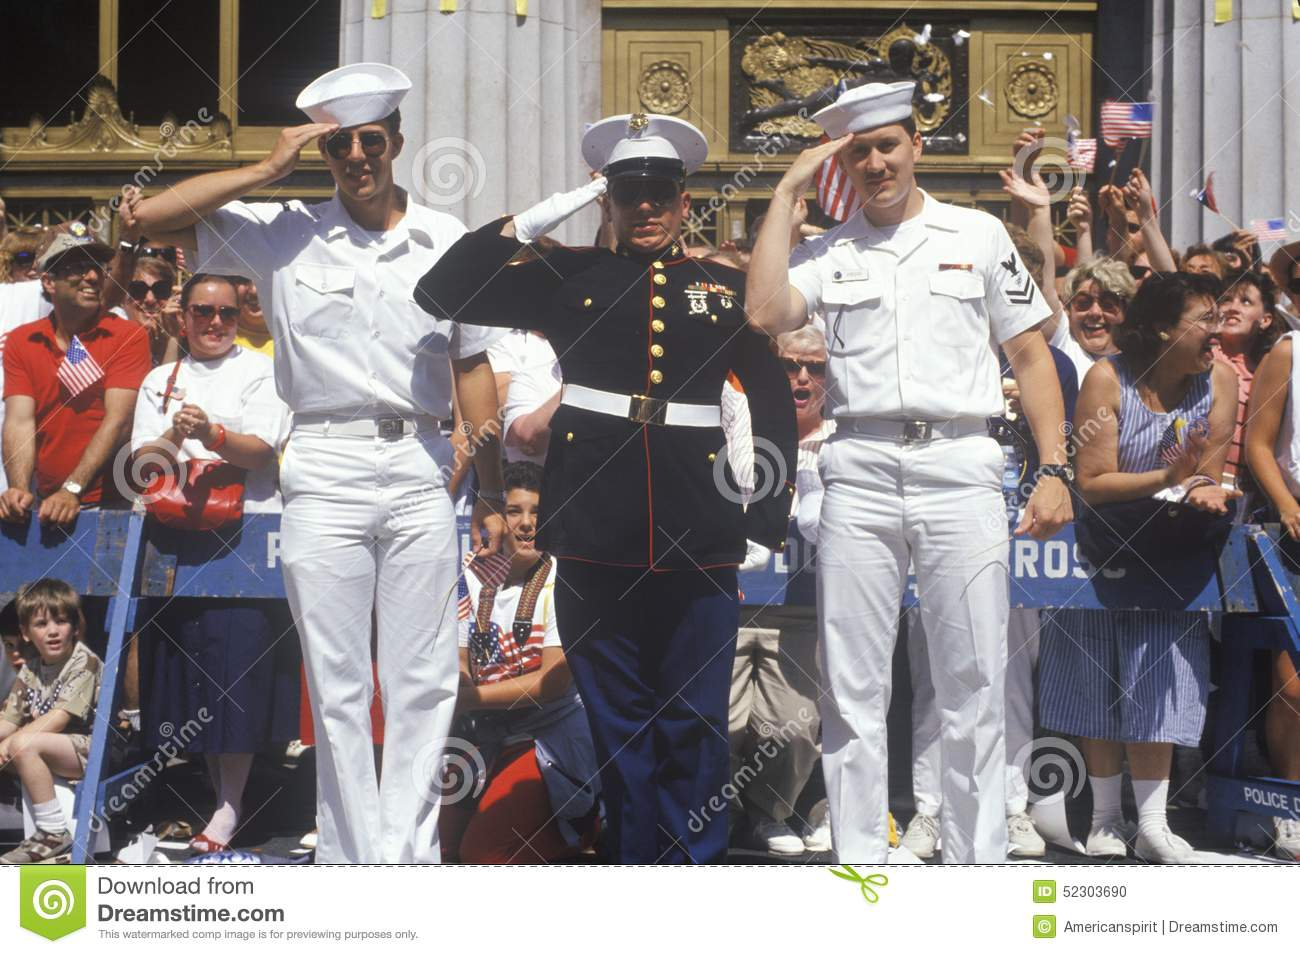 Two American Sailors and a United States Marine Saluting at Parade, America